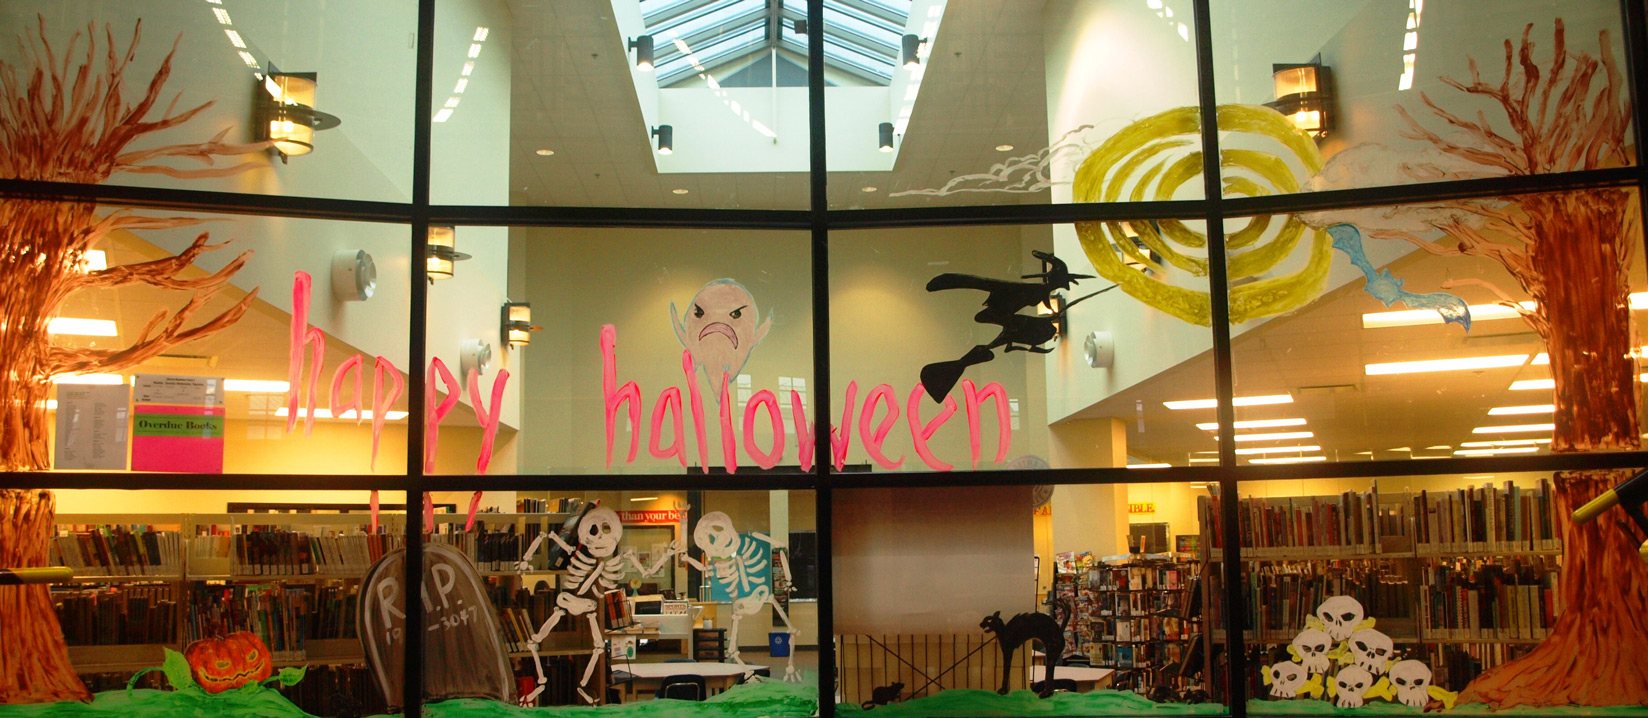 A painted window display with Halloween elements like angry ghosts, skulls and witches.